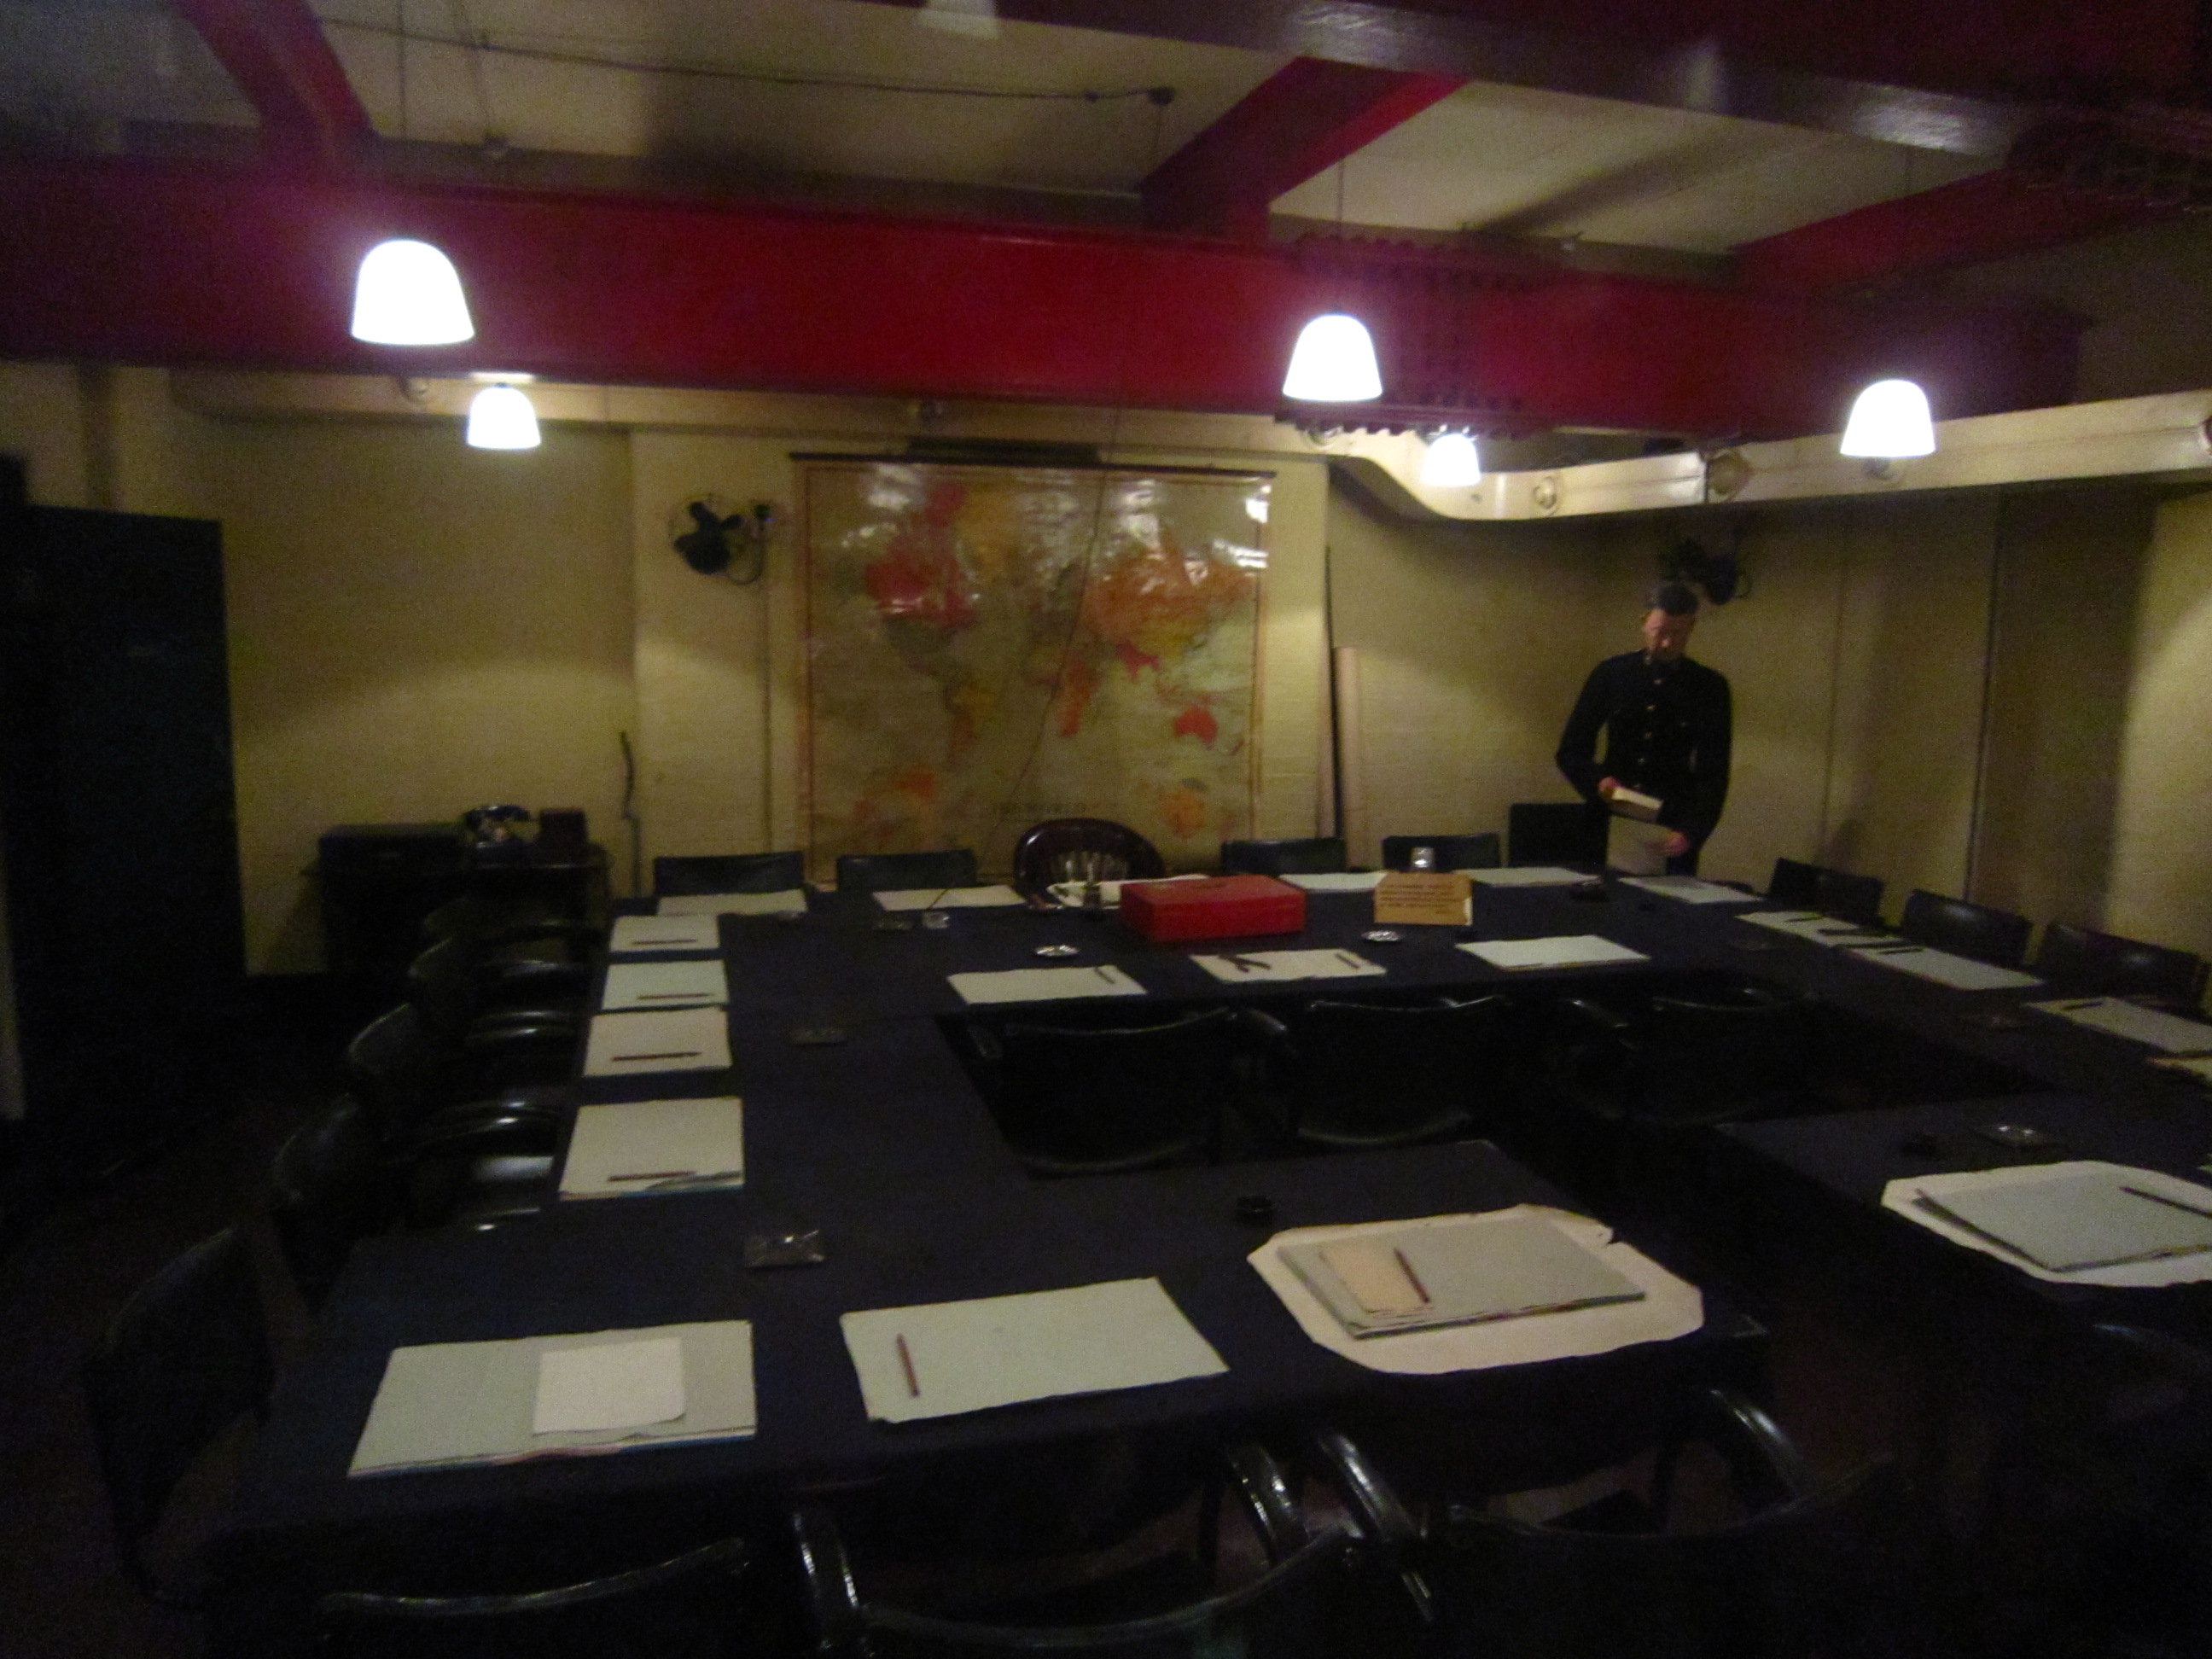 Westminster abbey and churchill war rooms full aperture - Churchill war cabinet rooms ...